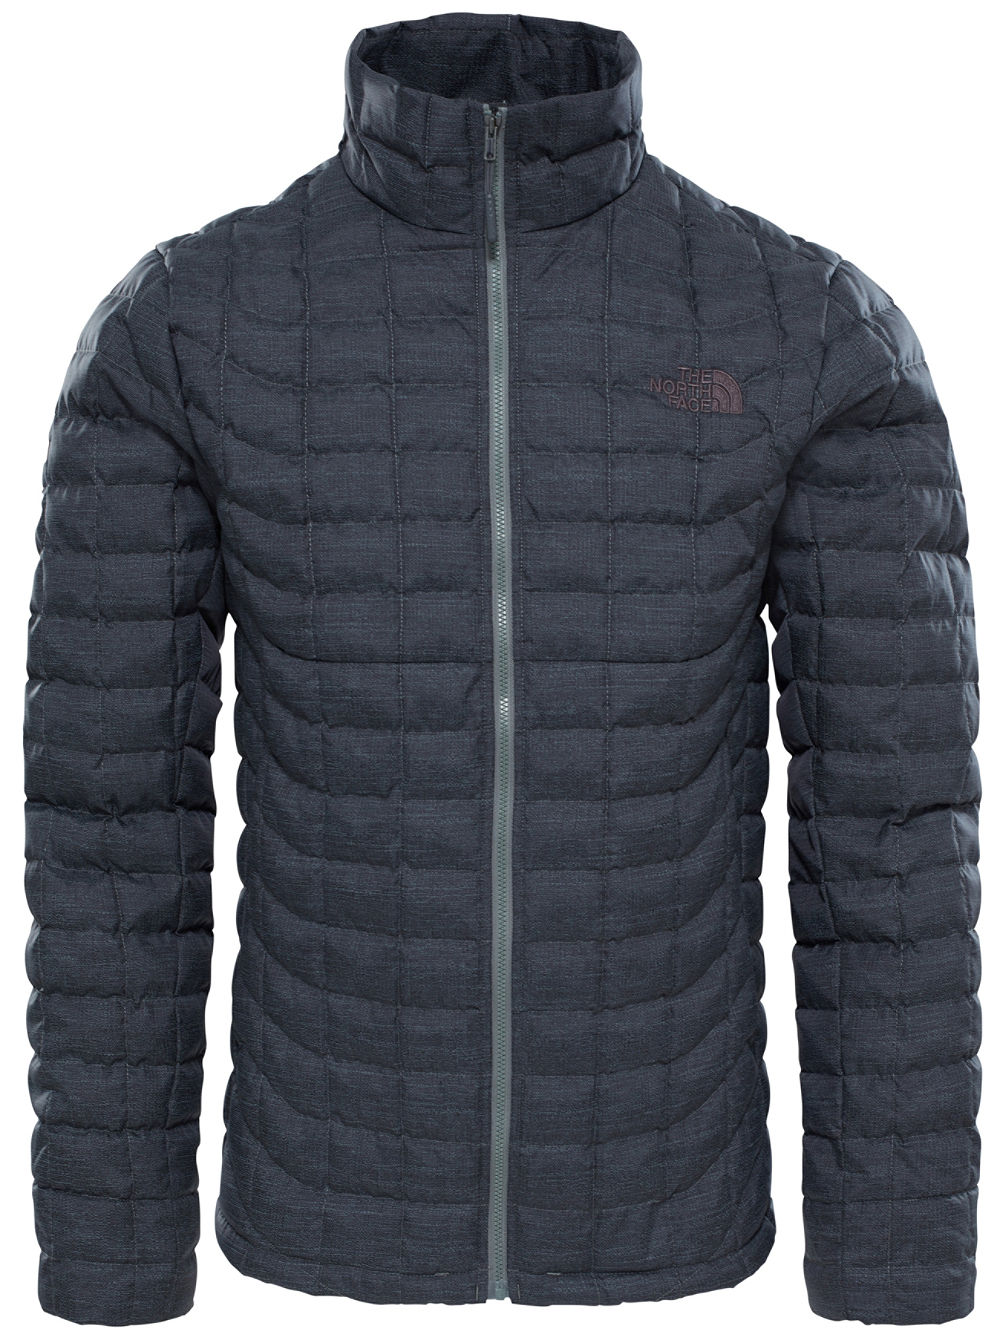 Thermoball Fz Outdoor Jacket